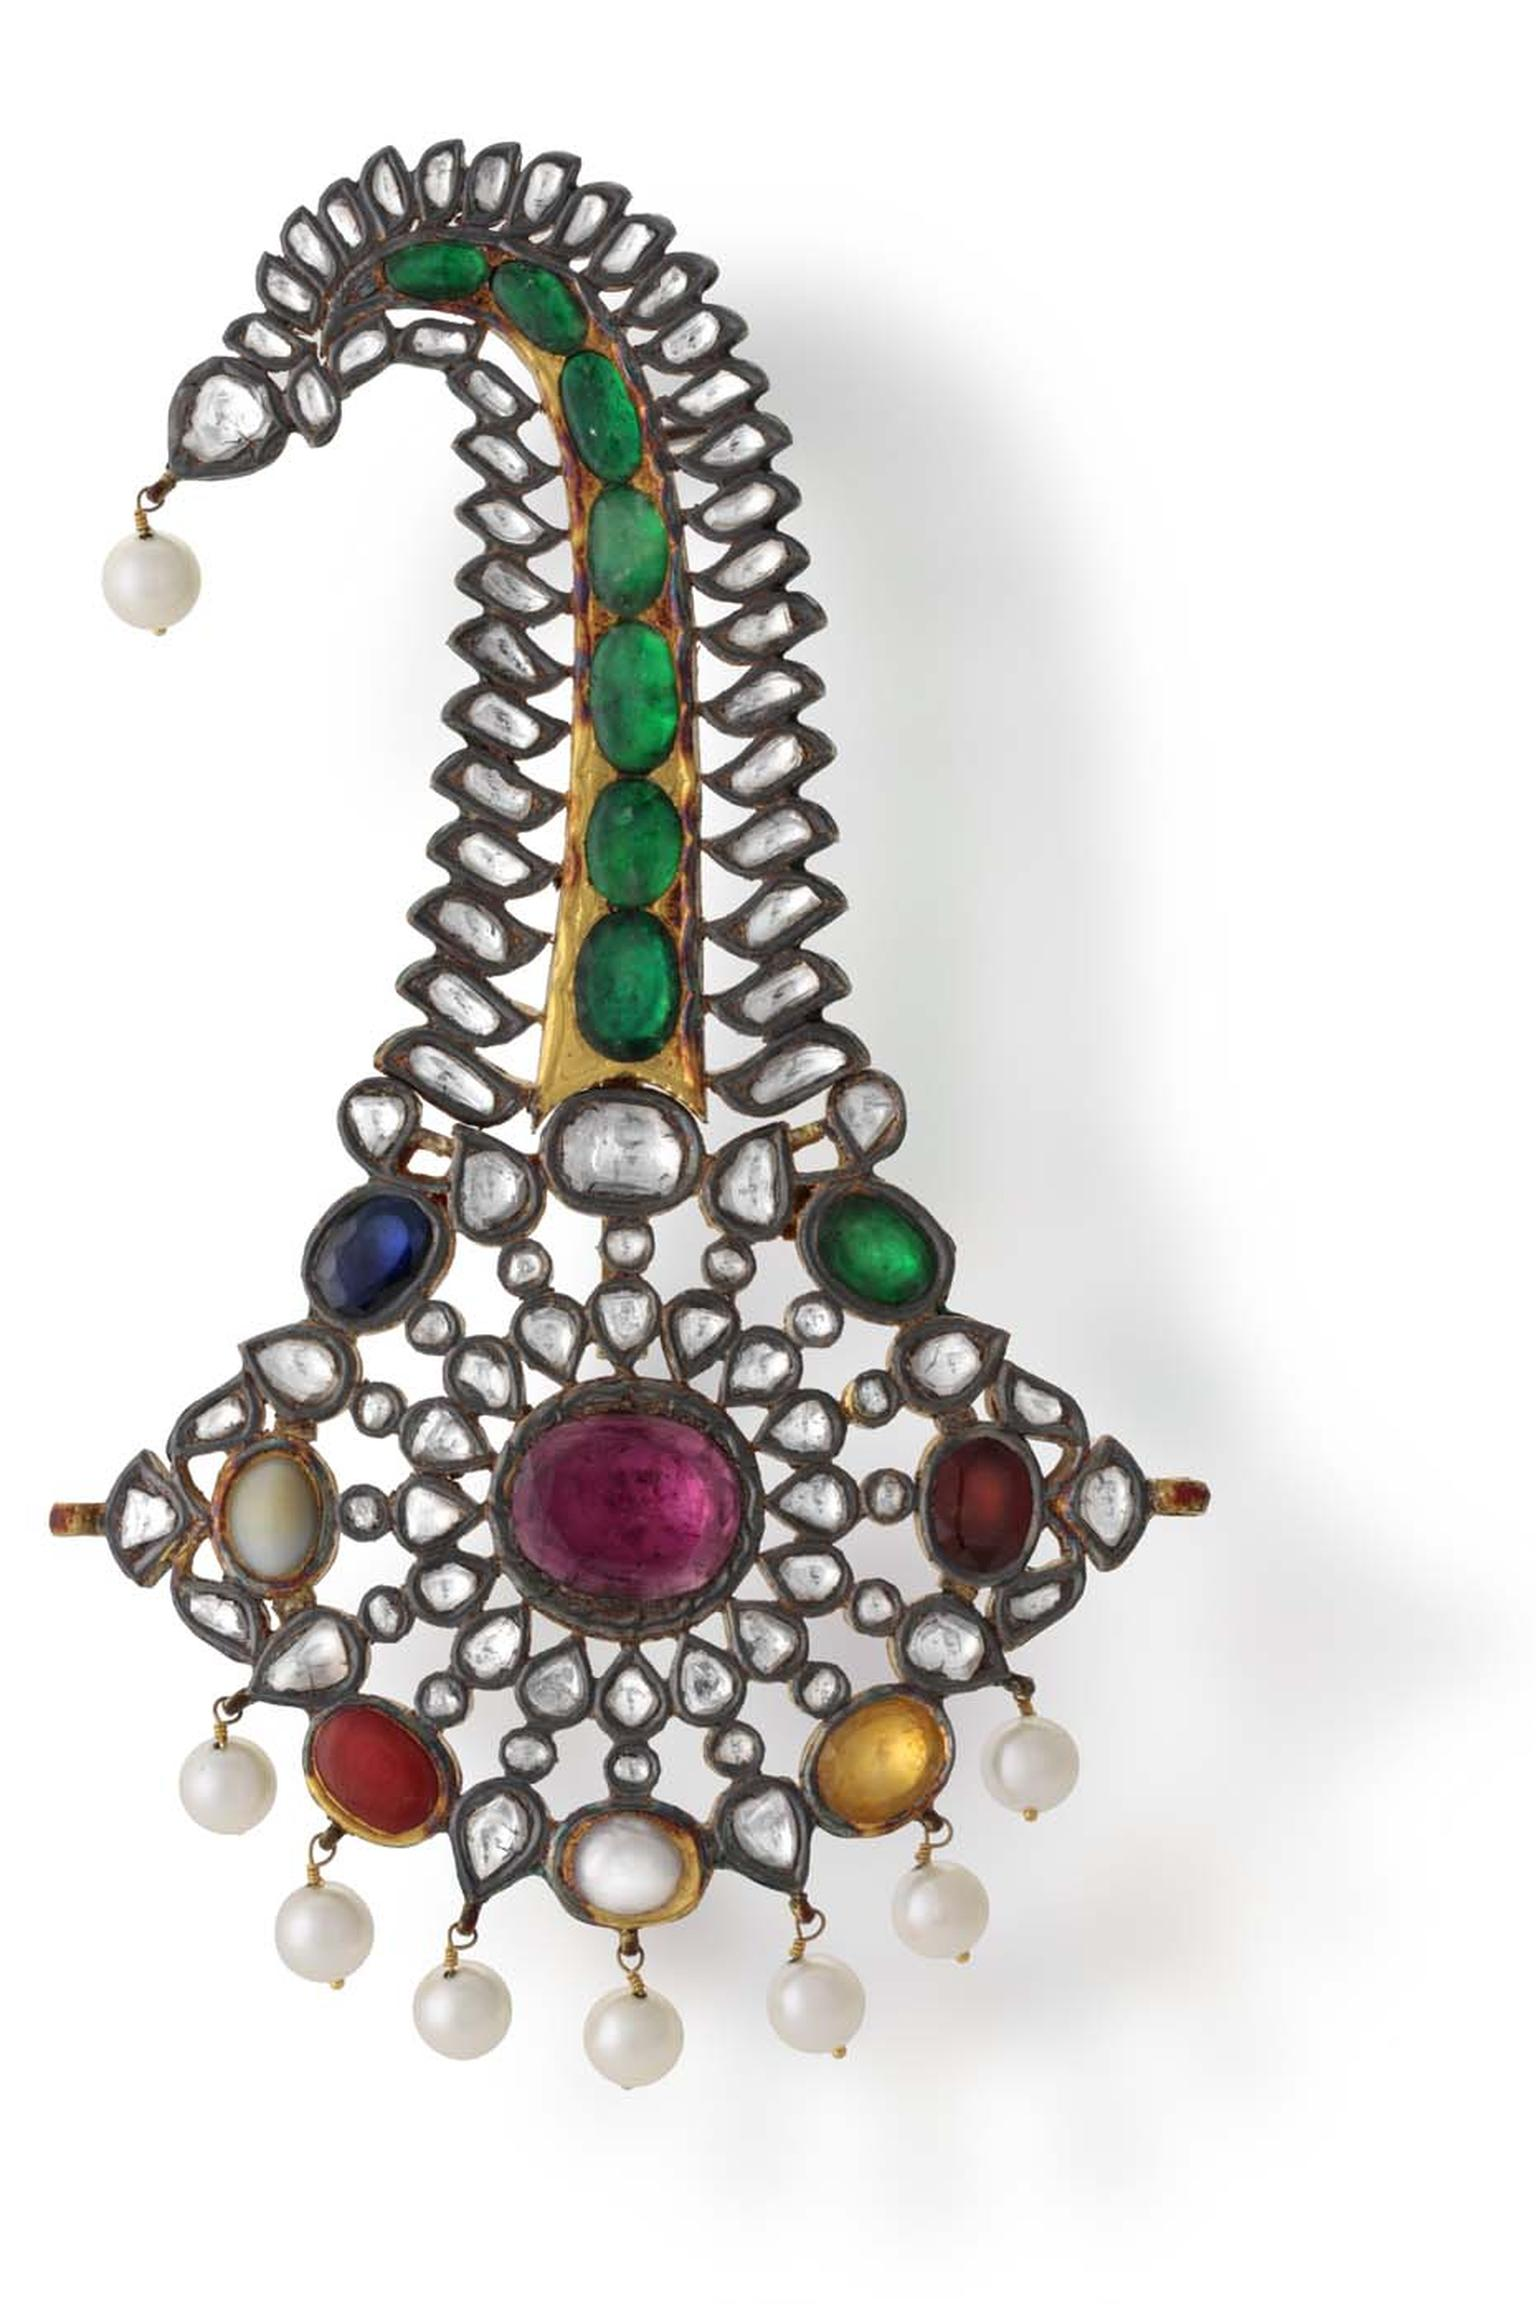 A sacred combination of nine gemstones called a Navratna decorate this Hazoorilal sarpech, which is designed to be worn by a groom on his wedding day.